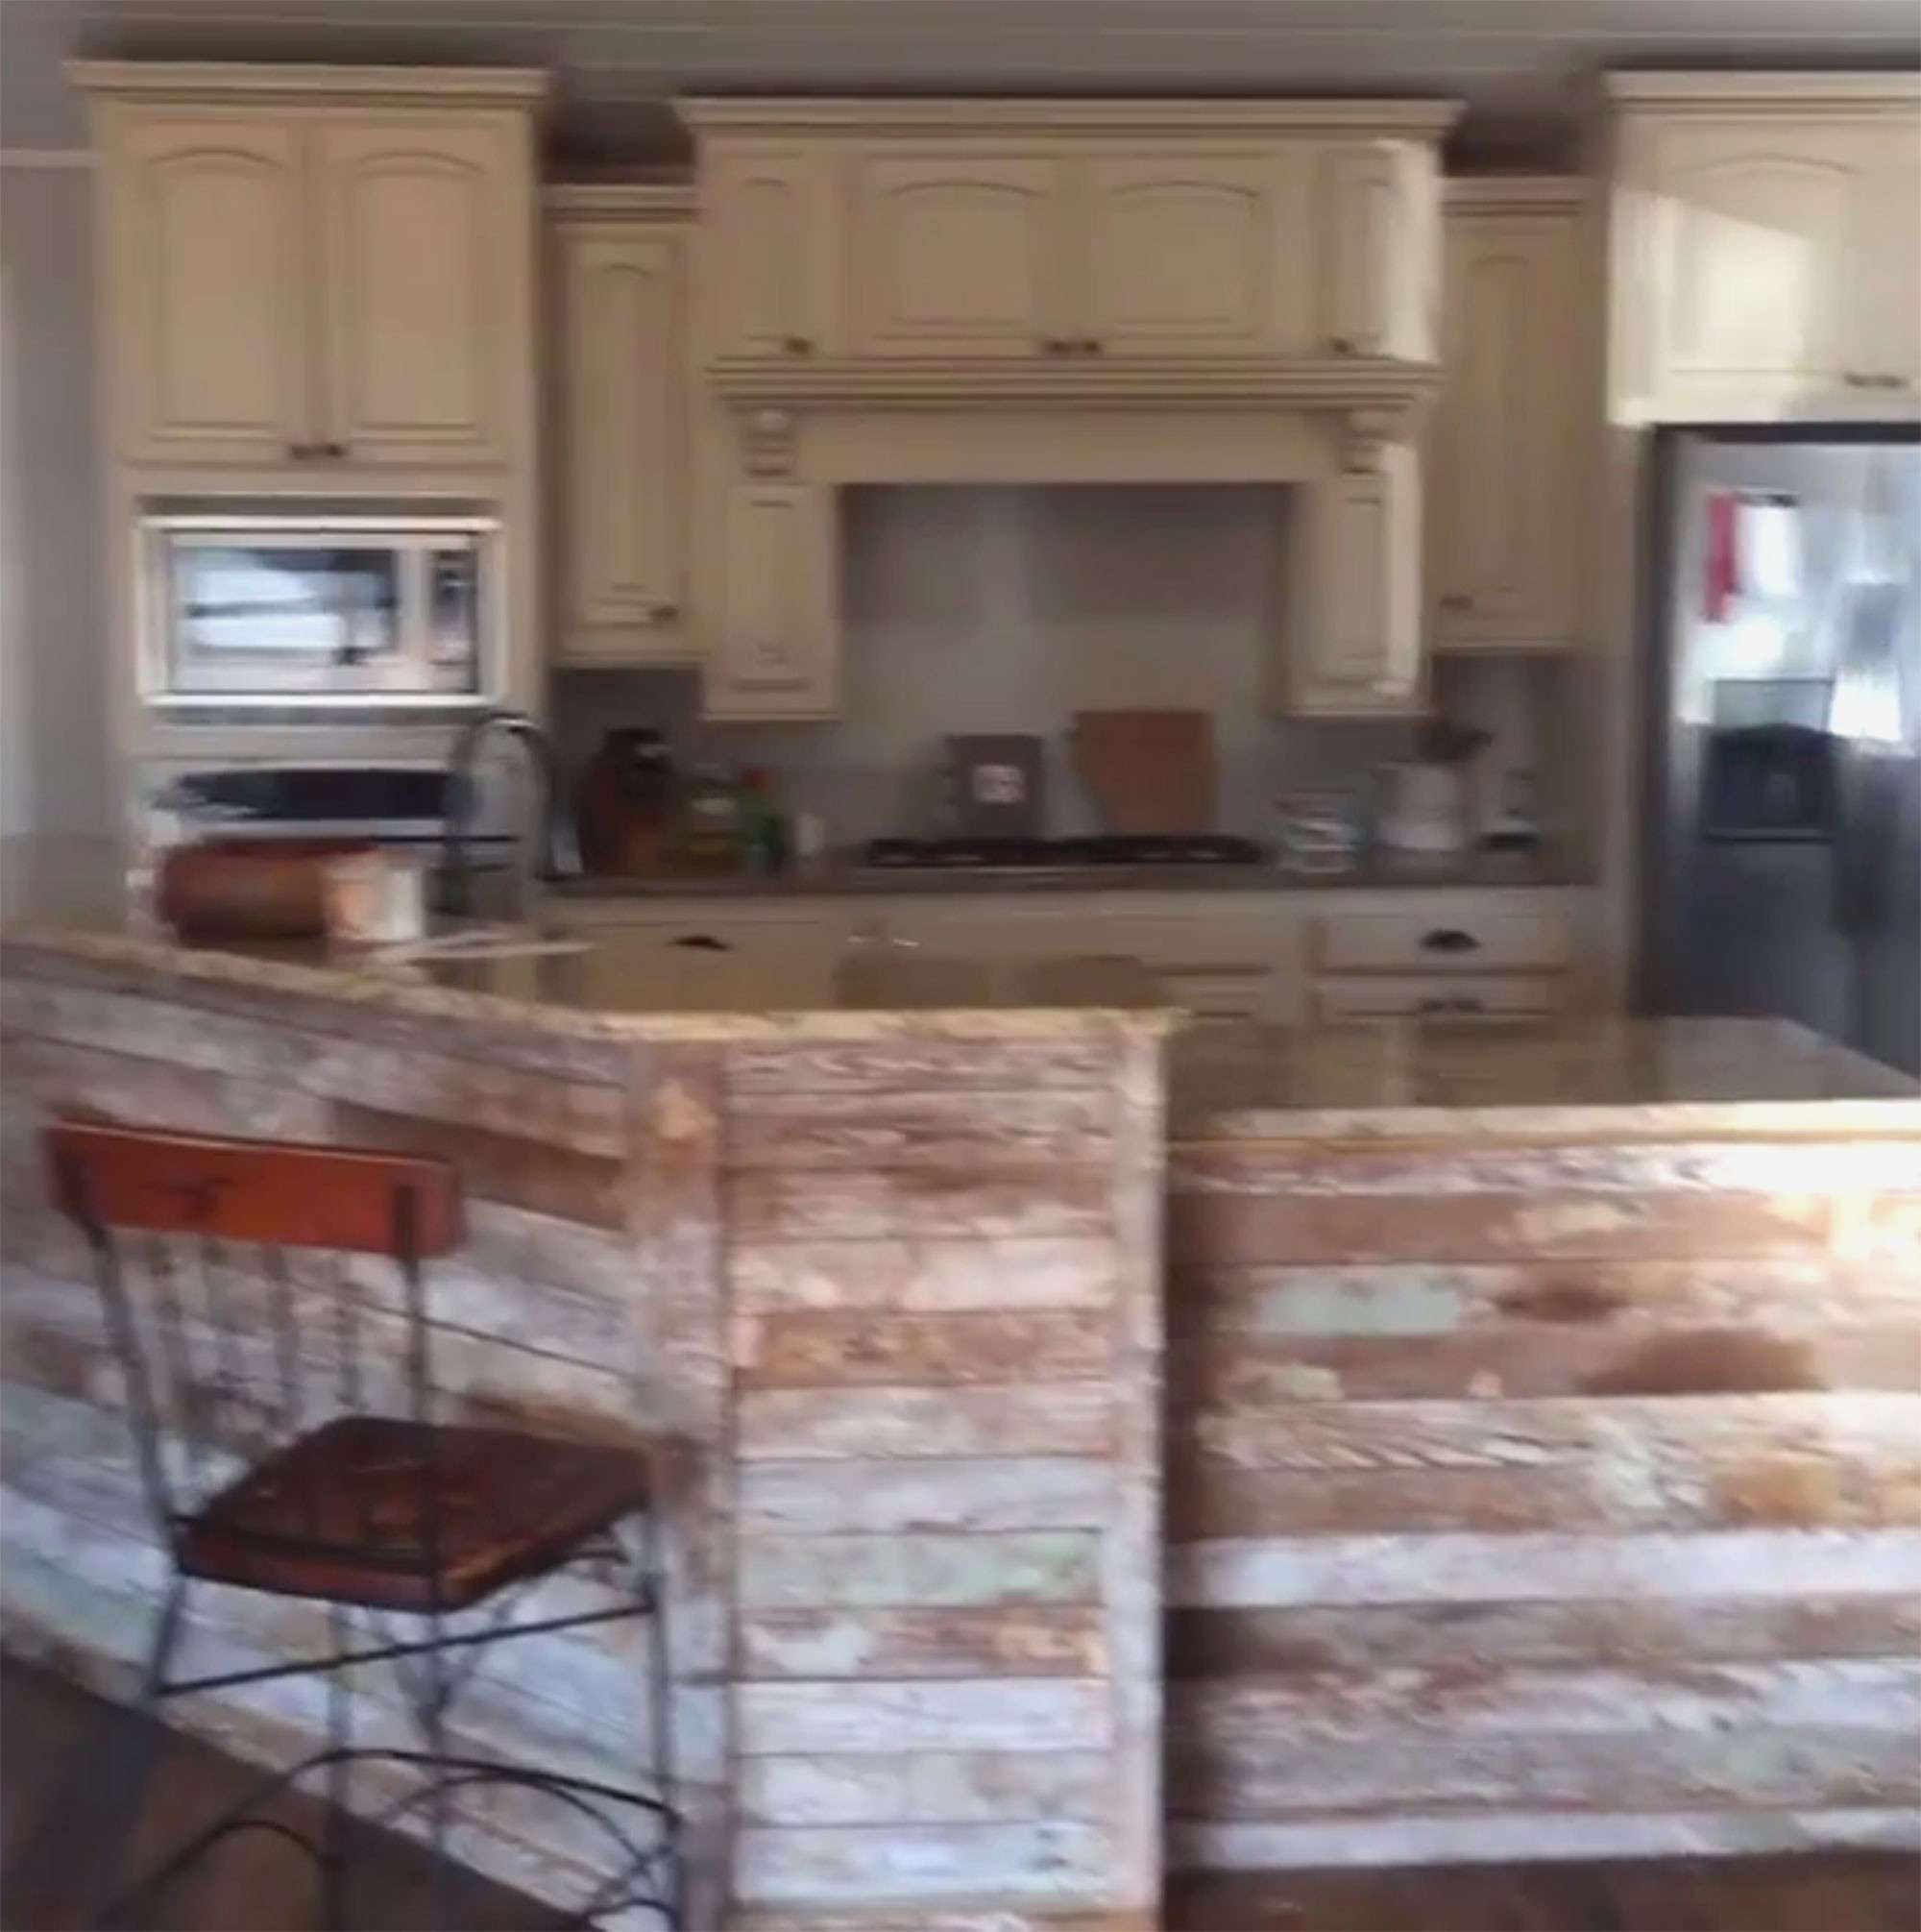 hickory hardwood flooring cheap of kitchen hardwood floors vs tile unique the pros and cons of laminate regarding kitchen hardwood floors vs tile fresh kitchens new kitchen kitchens unlimited kitchens unlimited 0d